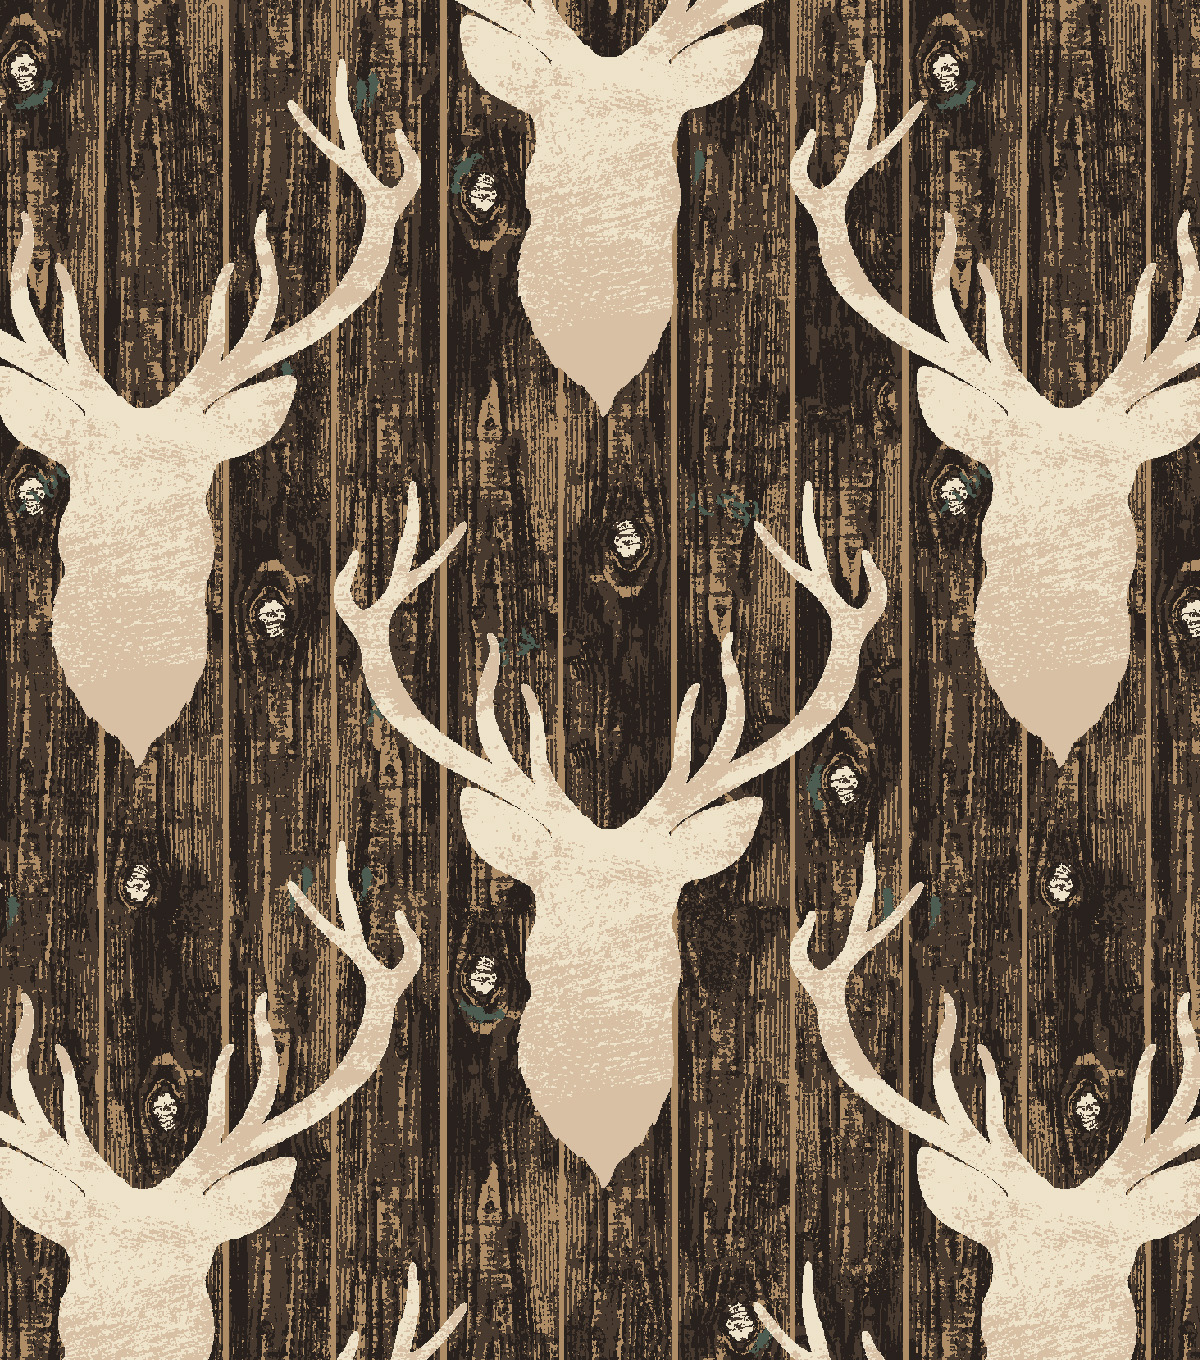 Snuggle Flannel Fabric 42\u0027\u0027-Stag Head on Wood Grain